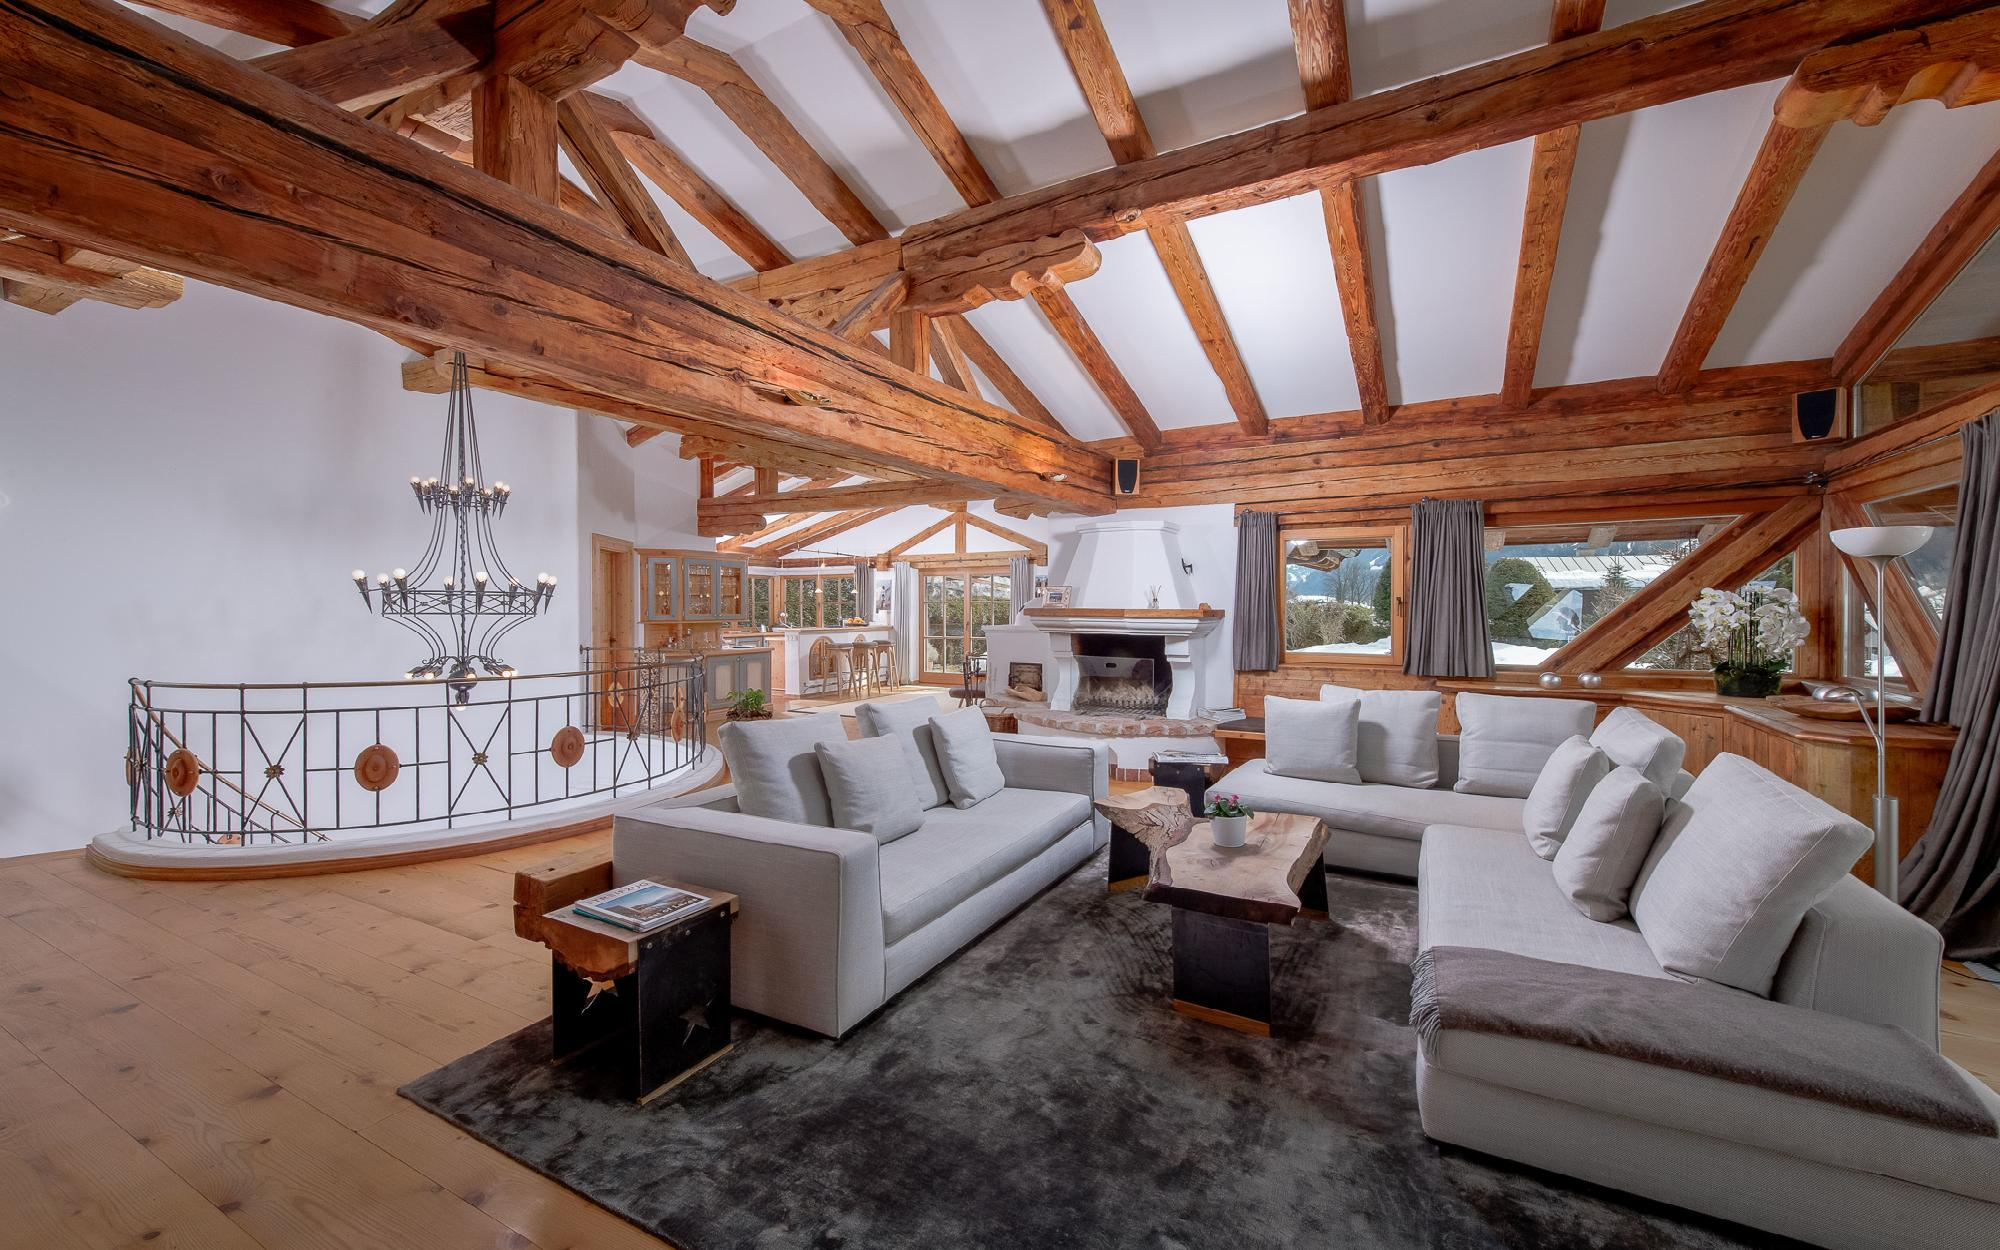 Enchanting Alpine chalet in an excellent location of Kitzbühel For Sale - Kitzbuehel